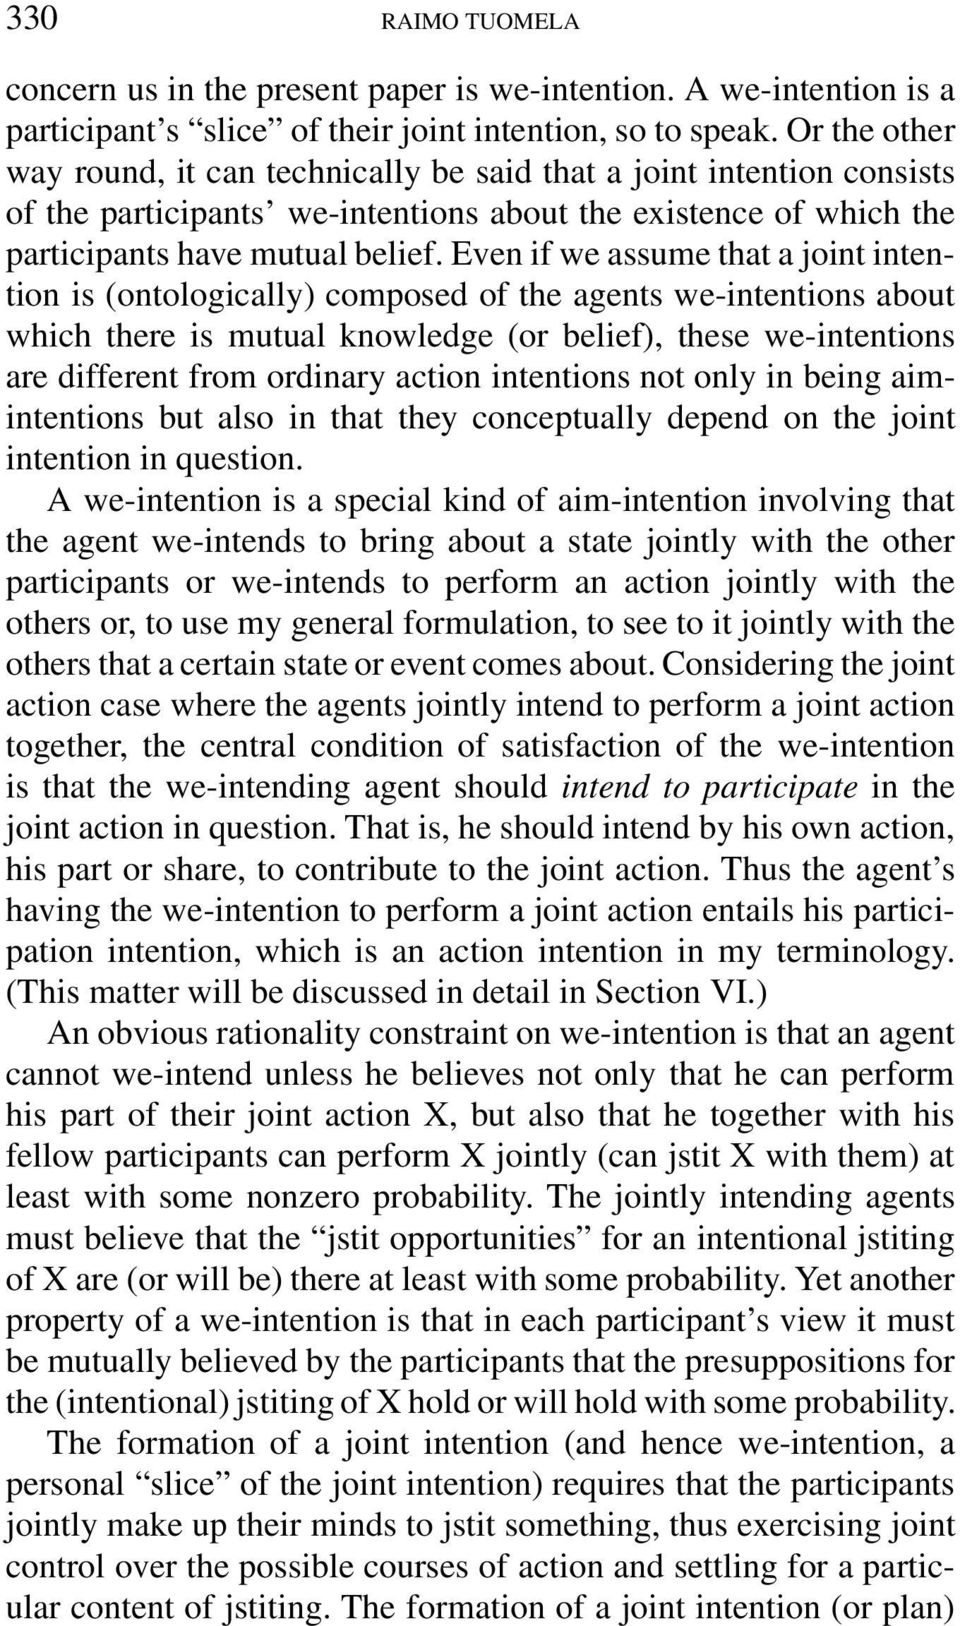 Even if we assume that a joint intention is (ontologically) composed of the agents we-intentions about which there is mutual knowledge (or belief), these we-intentions are different from ordinary